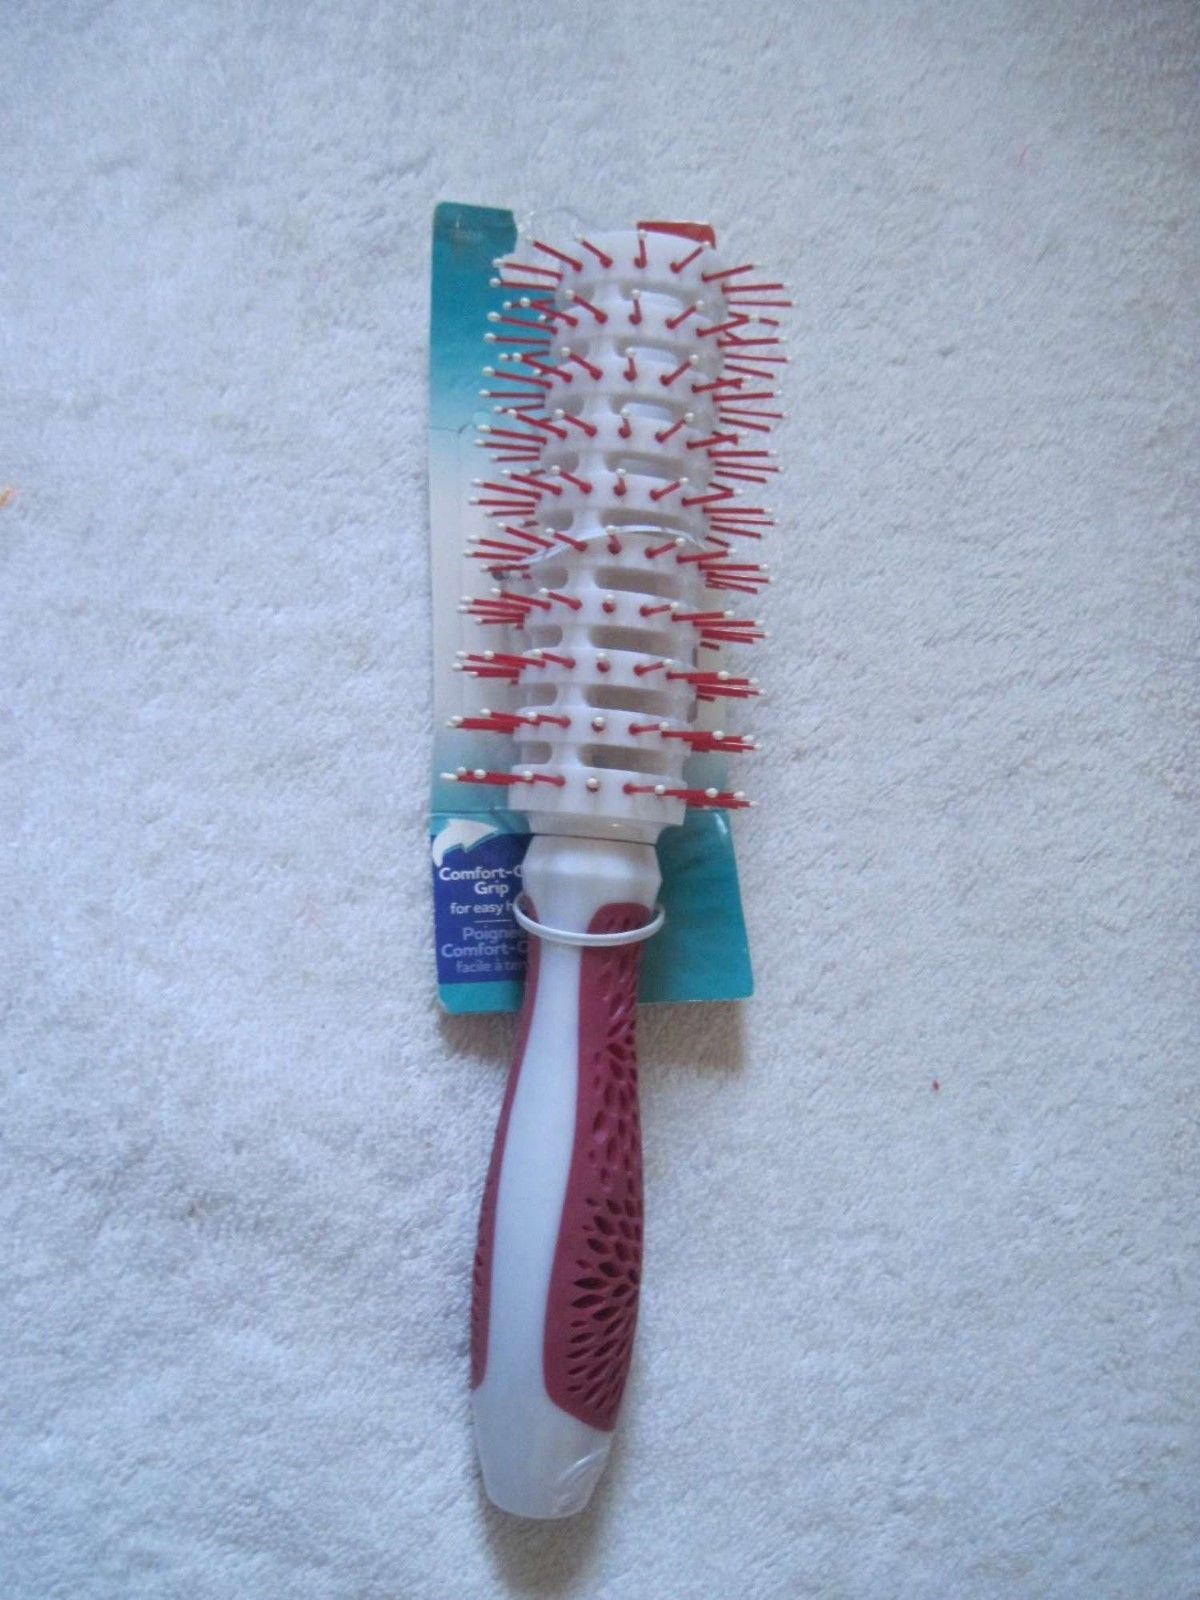 Blue Goody Comfort Cell Beauty Grips Vented Round Hair Brush Frizz Fighting Ions